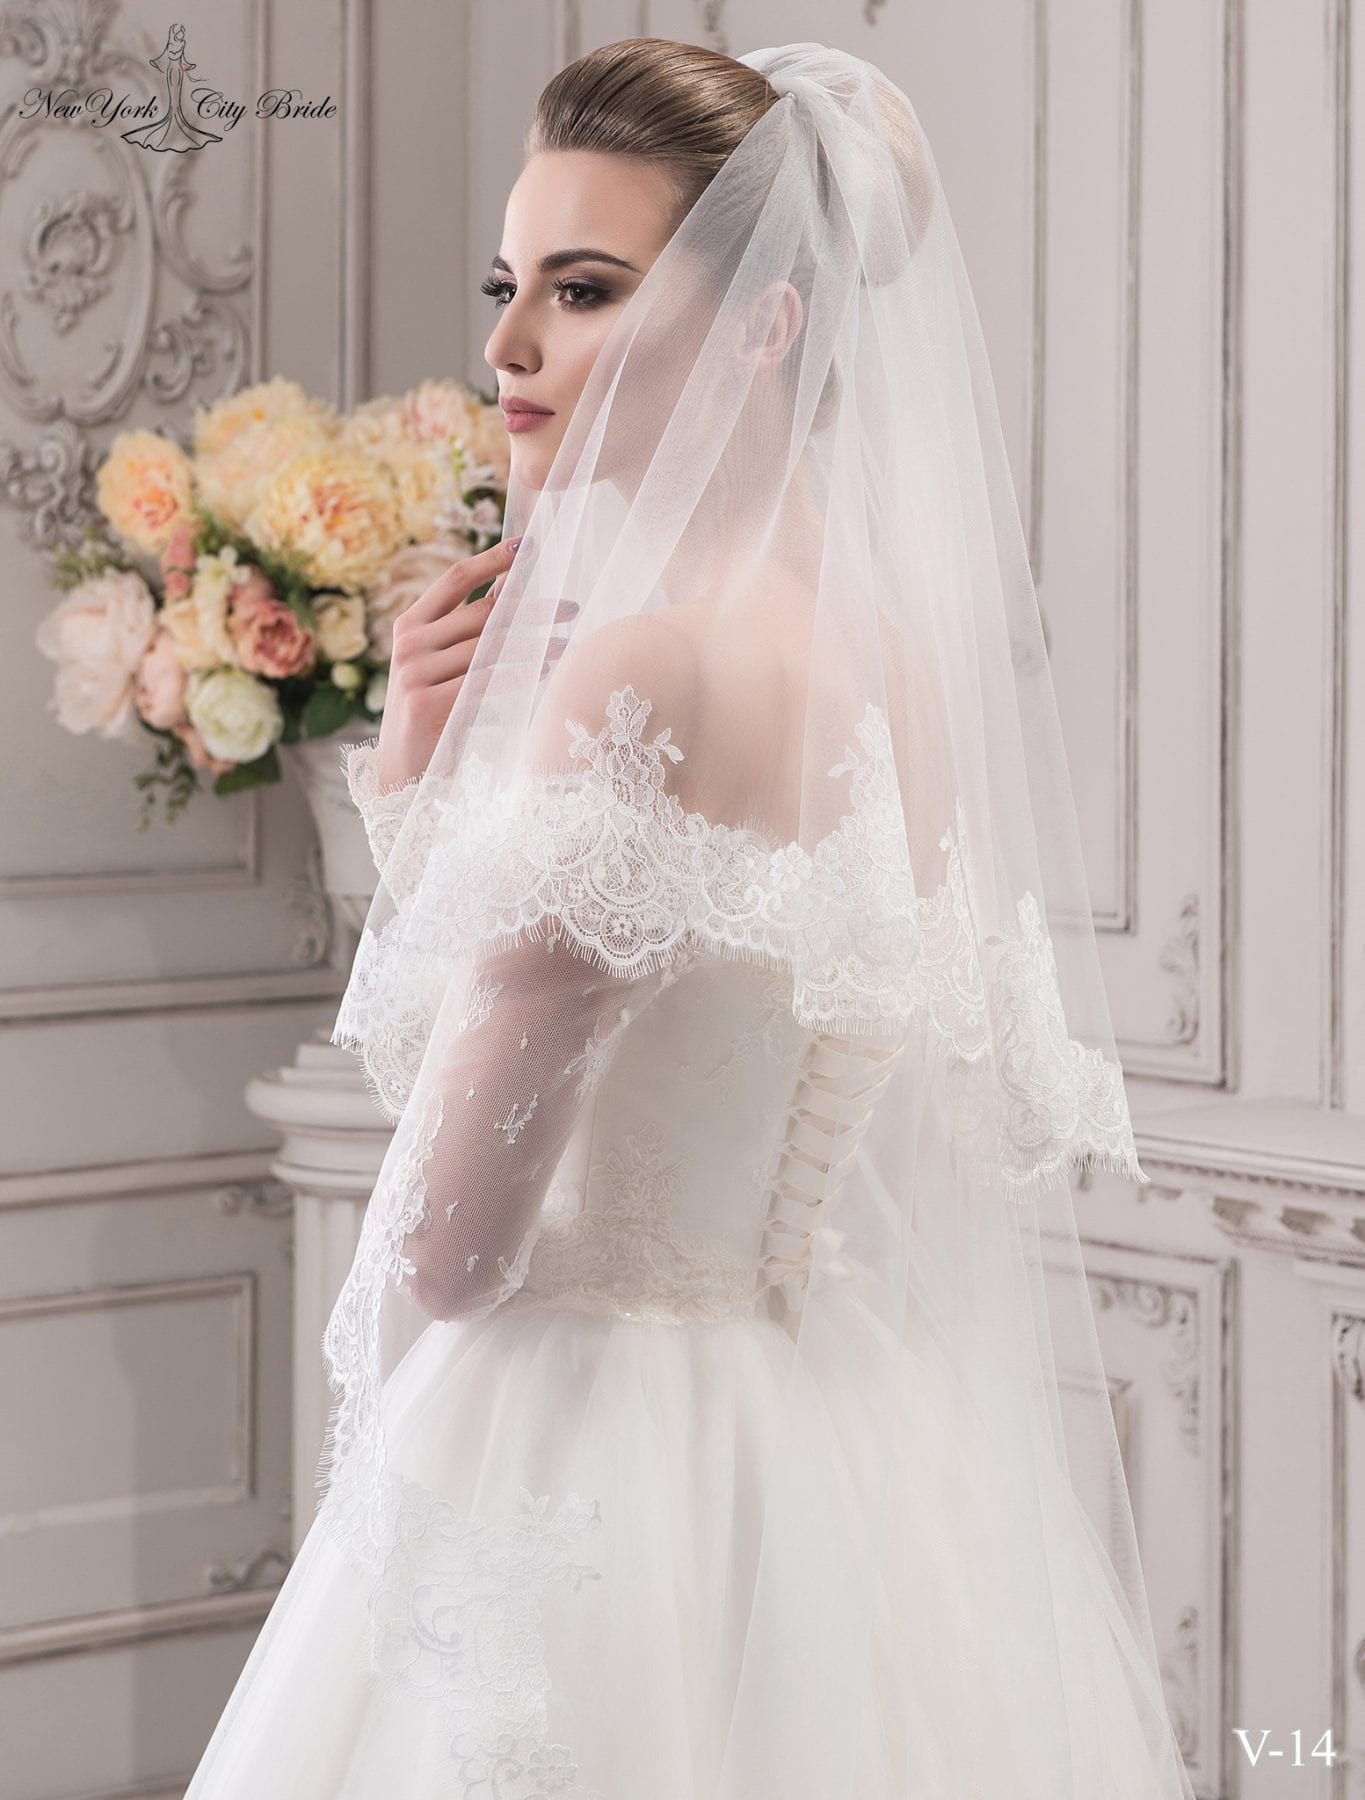 Two Tier Wedding Veil Jane For Sale At Ny City Bride In 2020 Wedding Veils Lace Lace Weddings Lace Veils Bridal